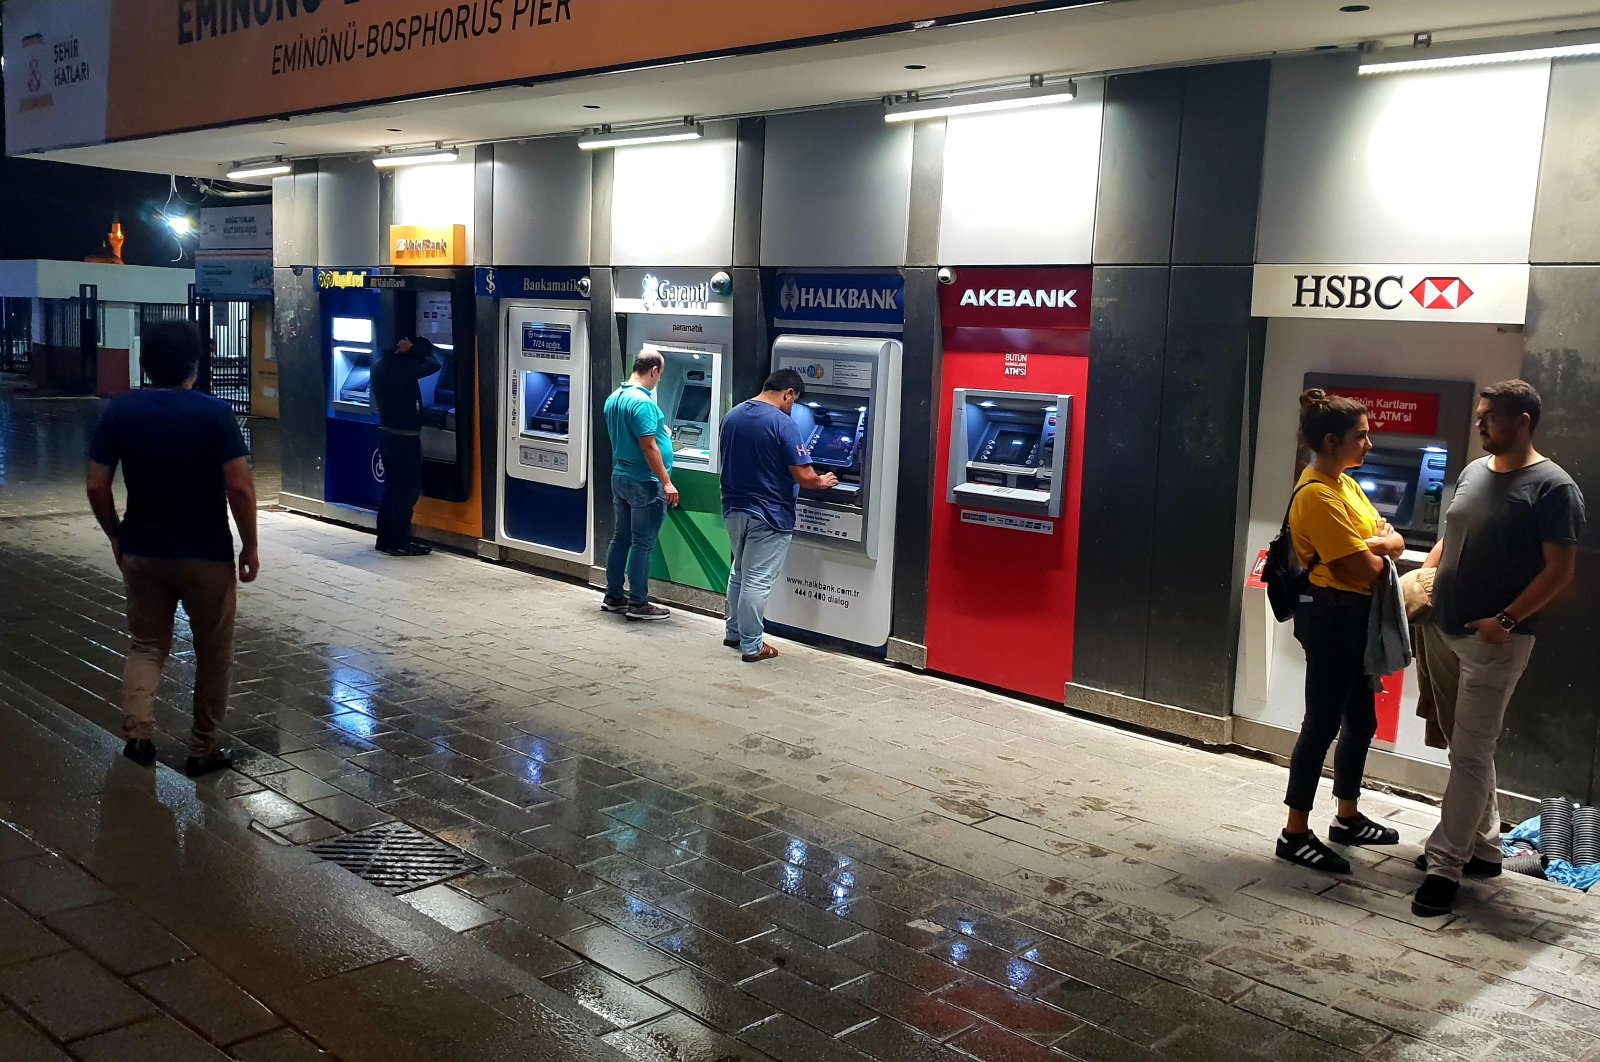 Customers use ATM machines in the Üsküdar district of Istanbul, Turkey, Sept. 14, 2018. (Shutterstock Photo)